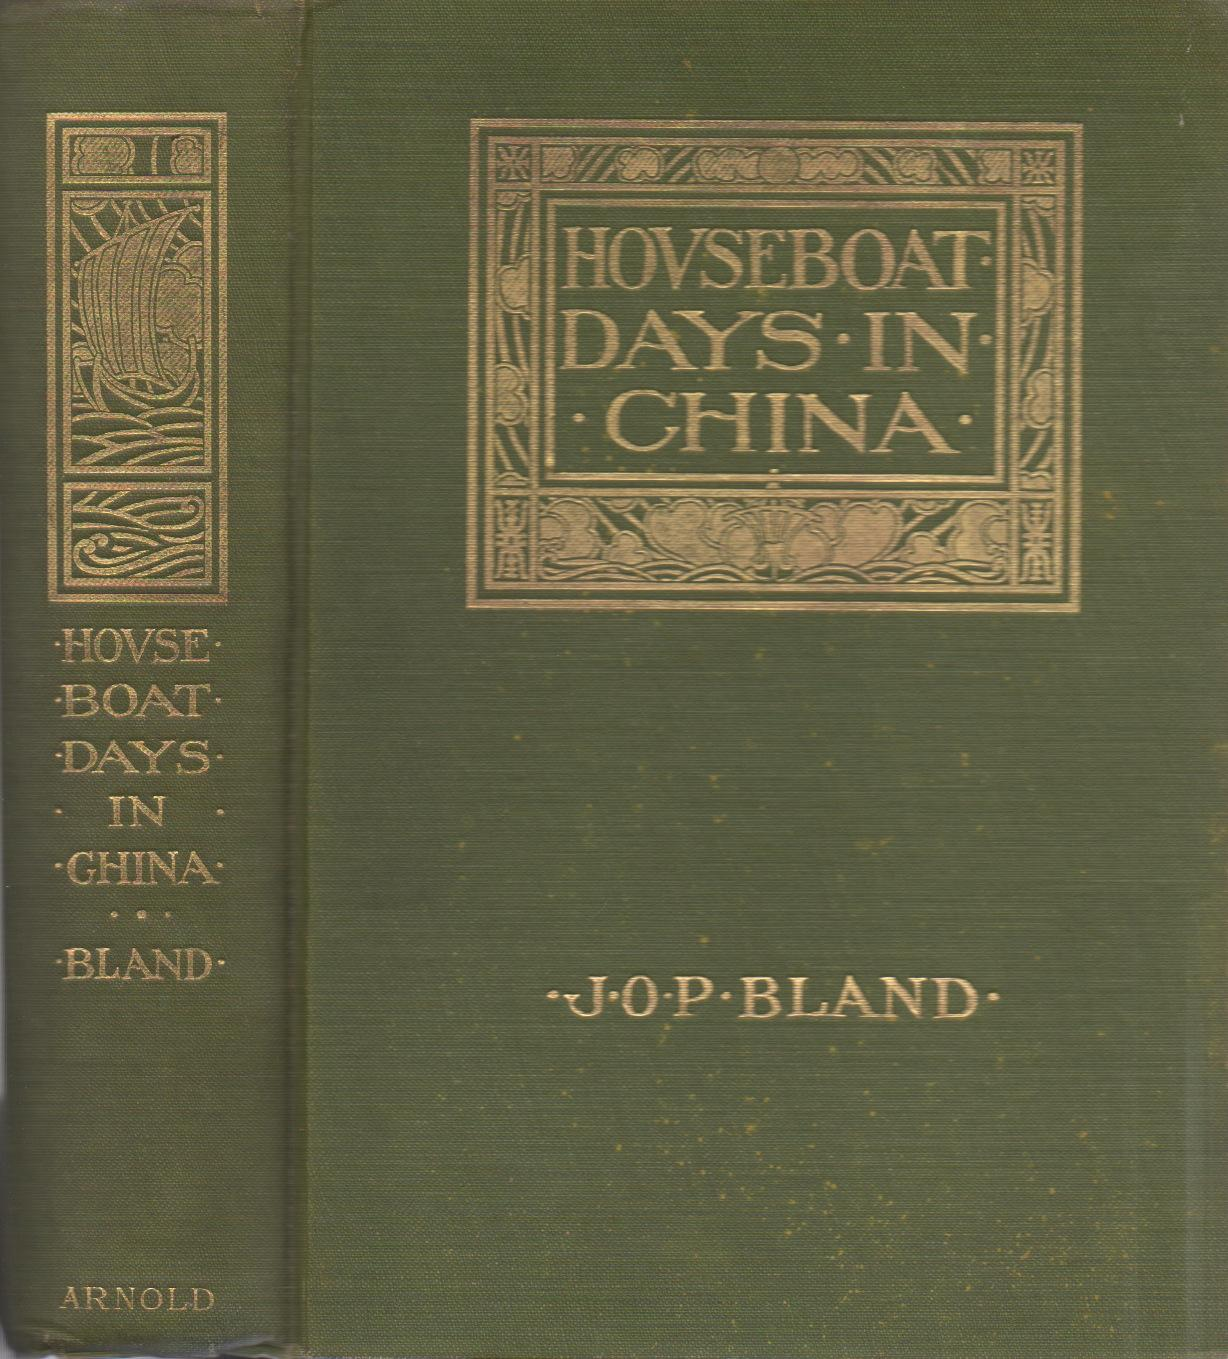 Houseboat Days in China Bland, J. O. P. Very Good Hardcover